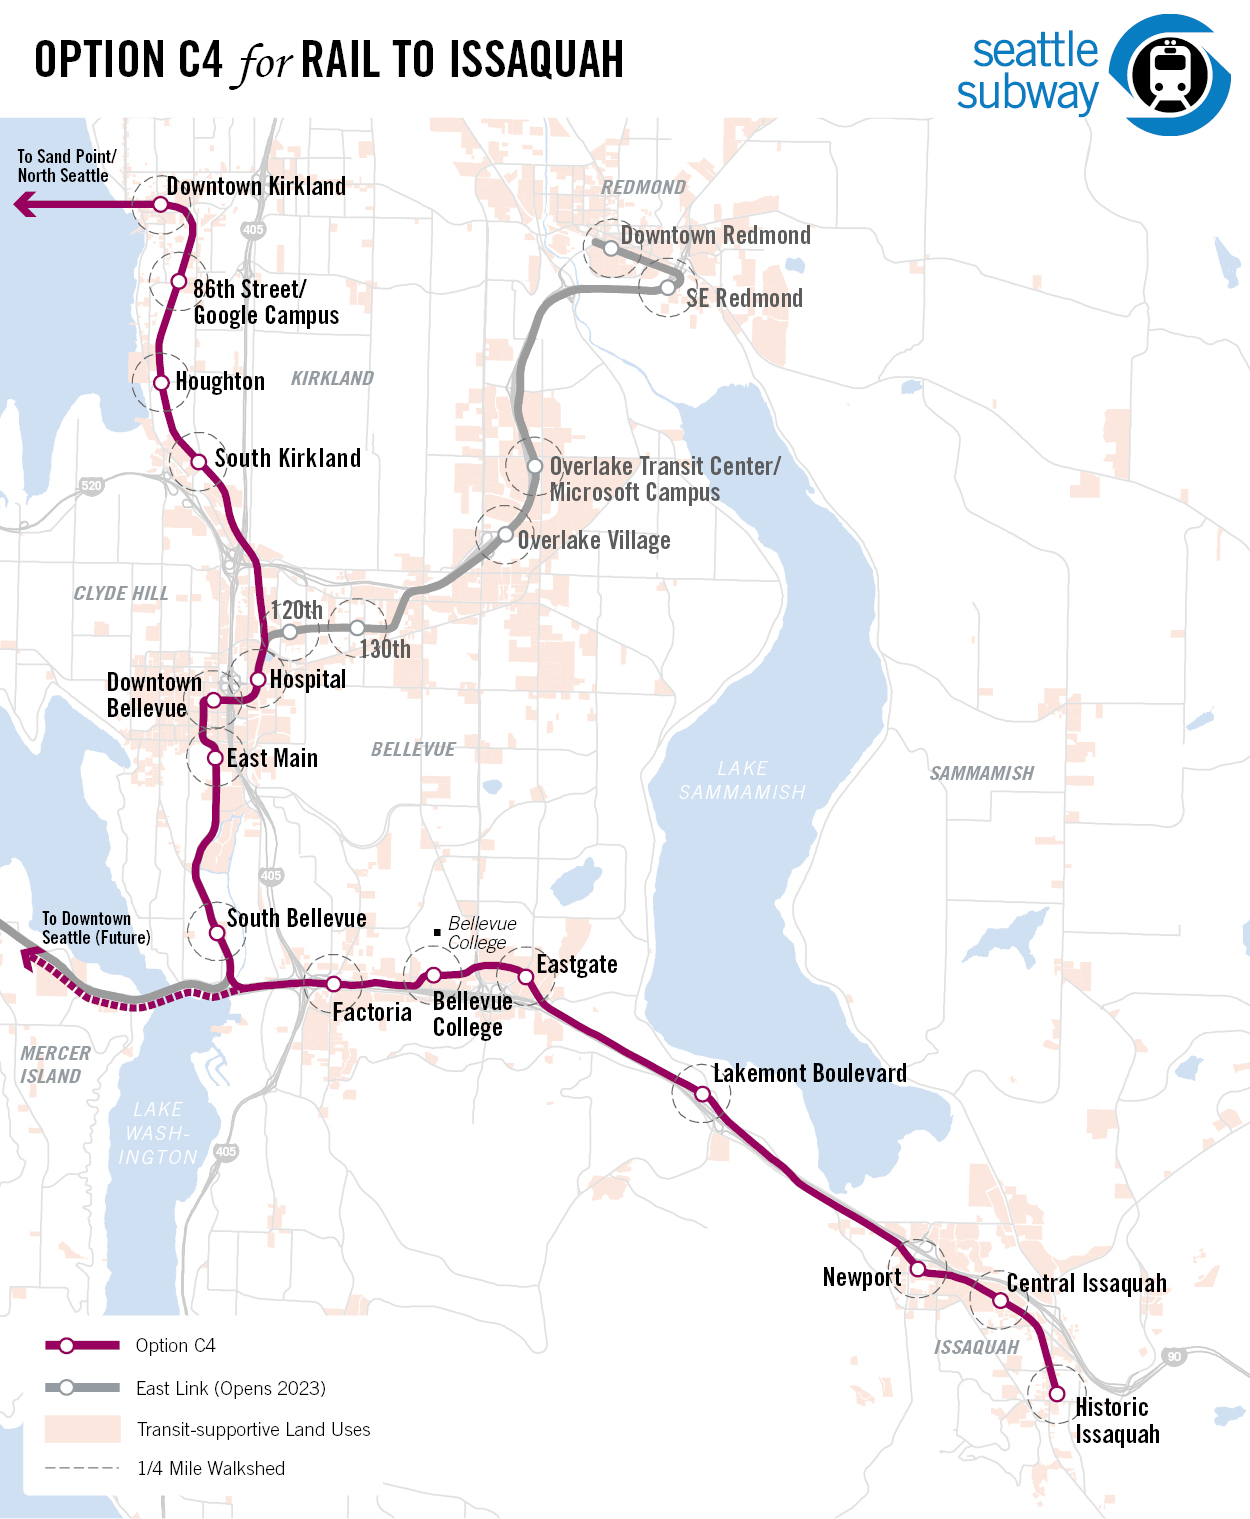 Issaquah Rail Map